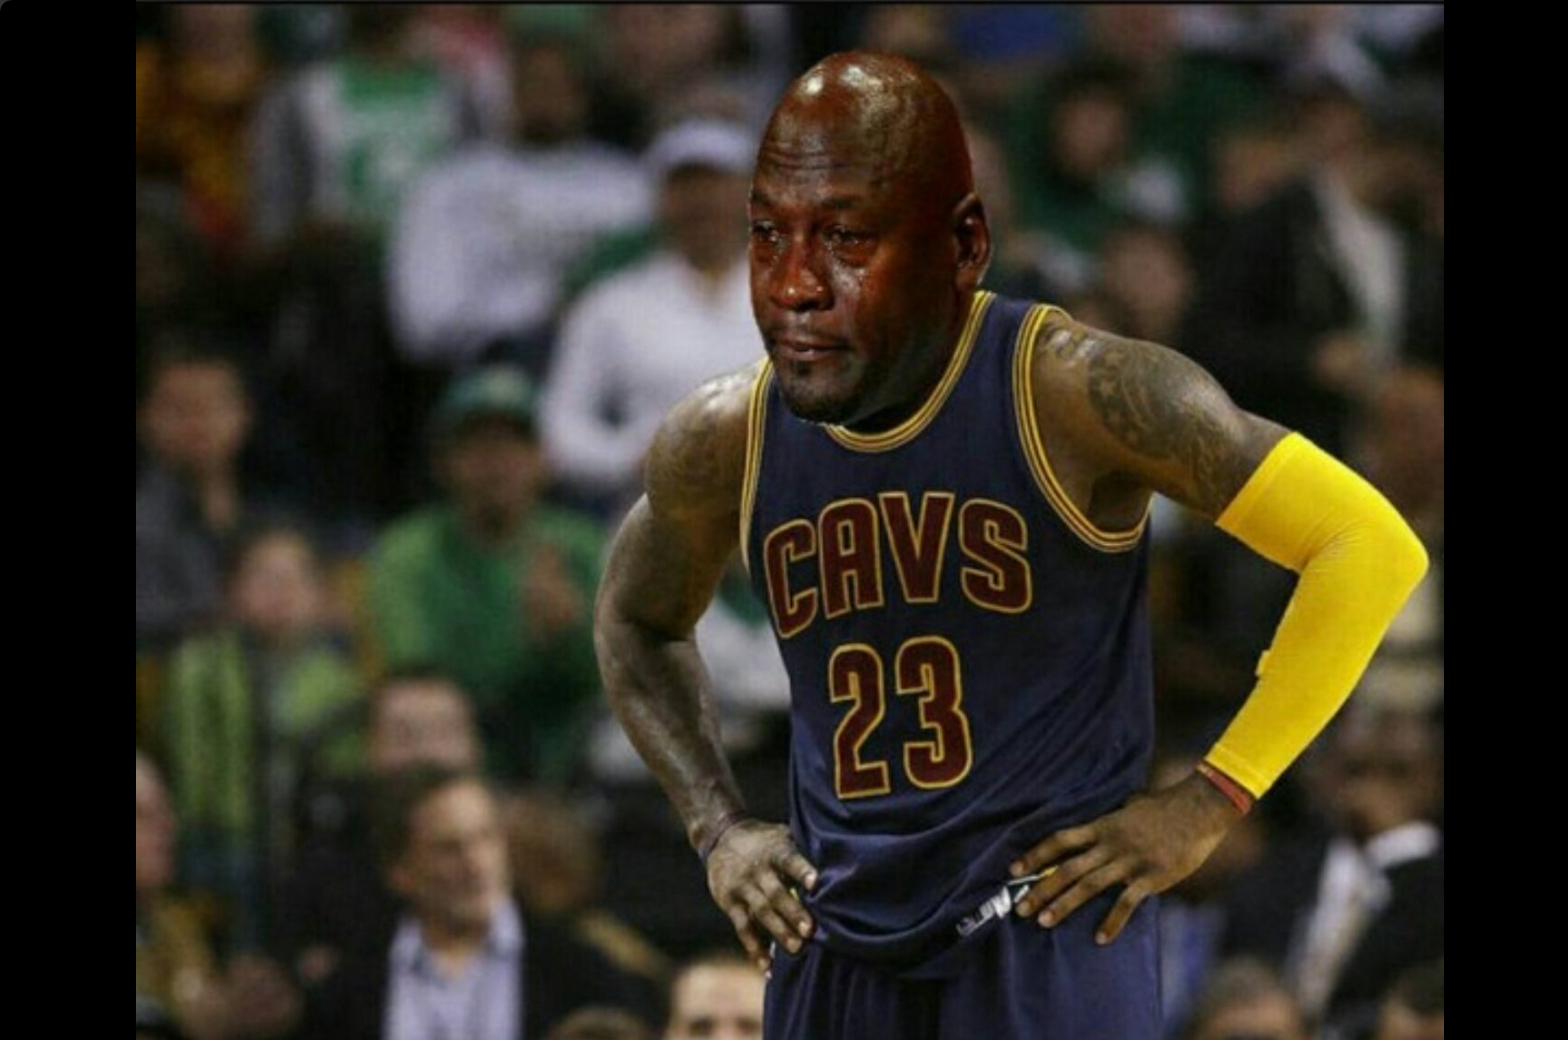 Memes About NBA Finals 2016, LeBron James & Stephen Curry   HipHopDX